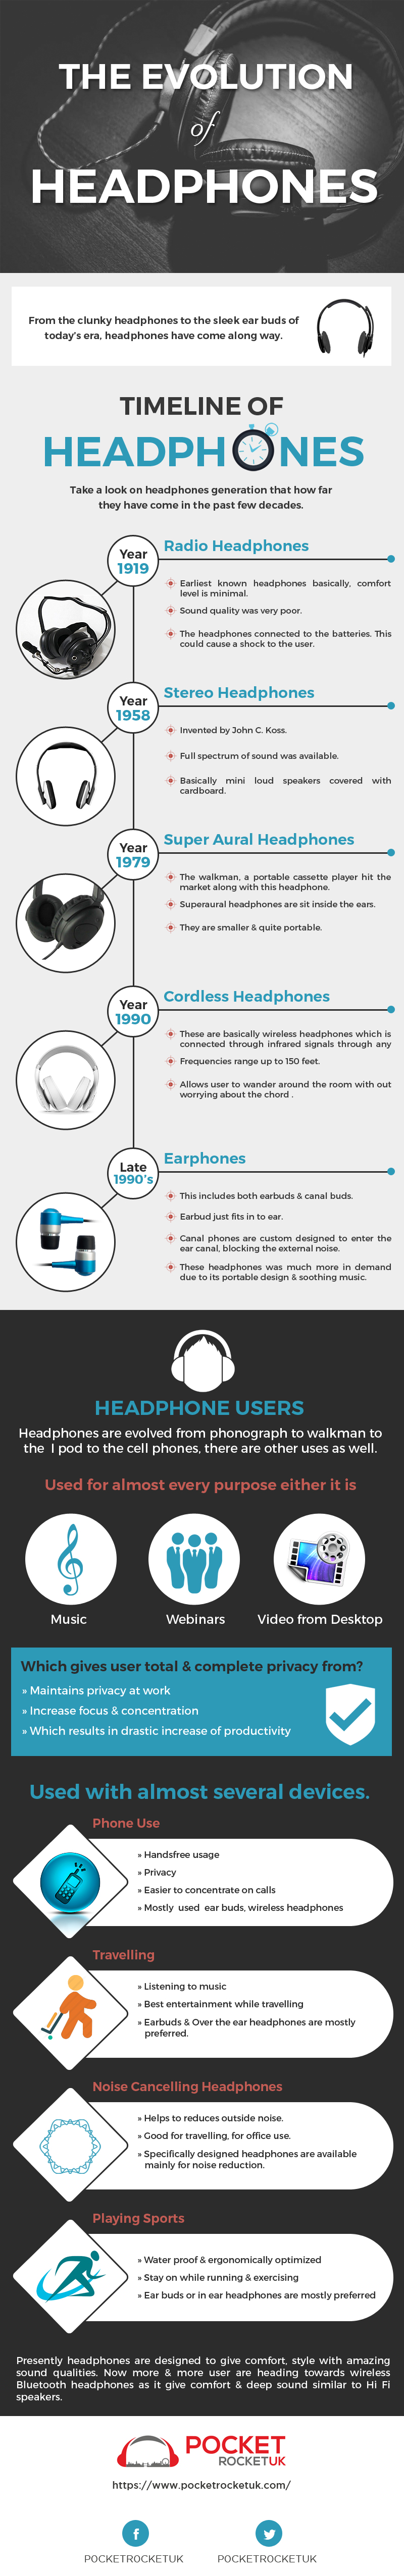 How headphones have changed over time